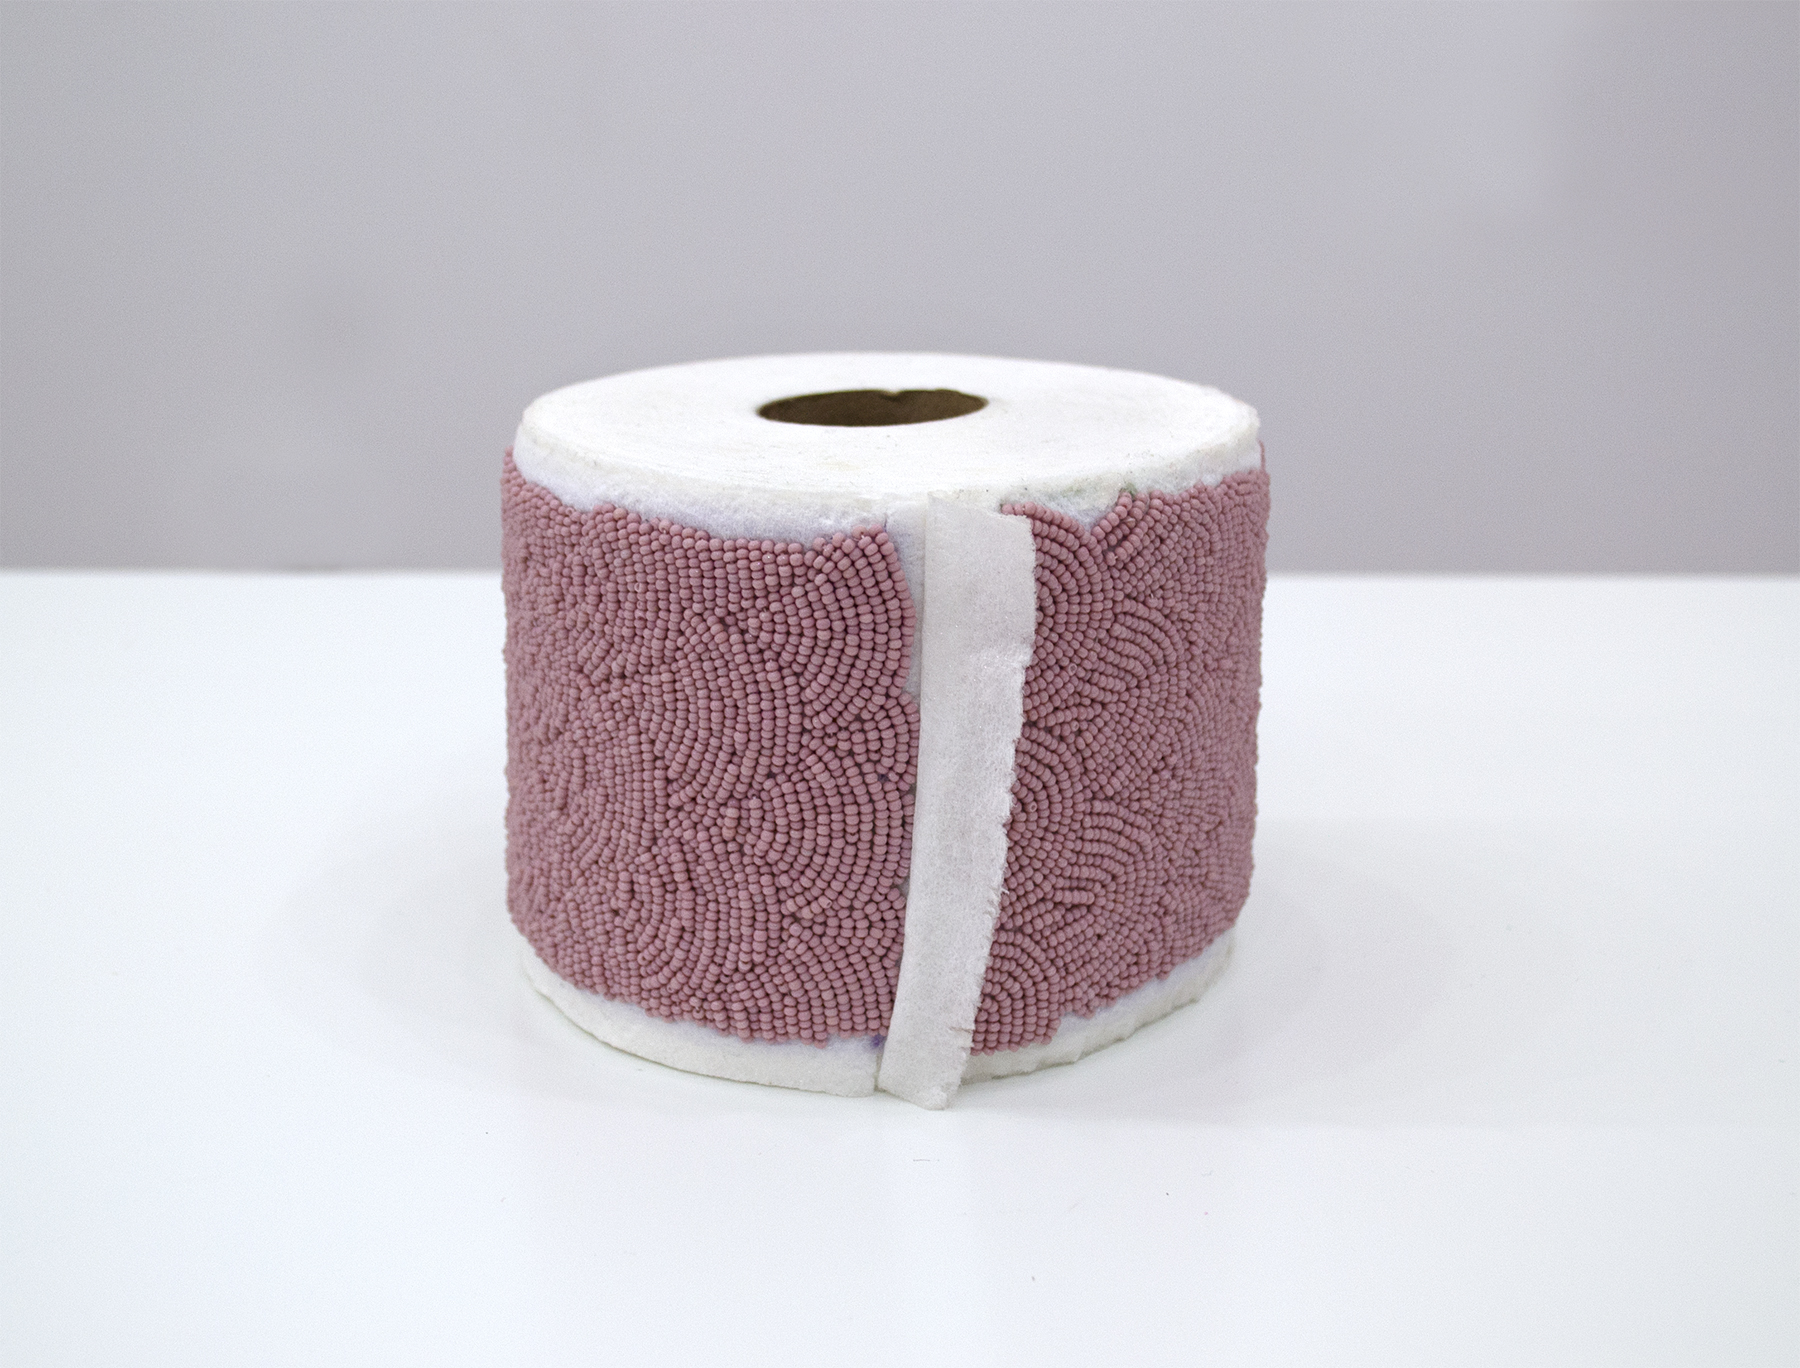 "T.P., 2018, Audie Murray (Métis), Toilet paper and seed beads, 4"" x 5"" x 5"", $9,000"